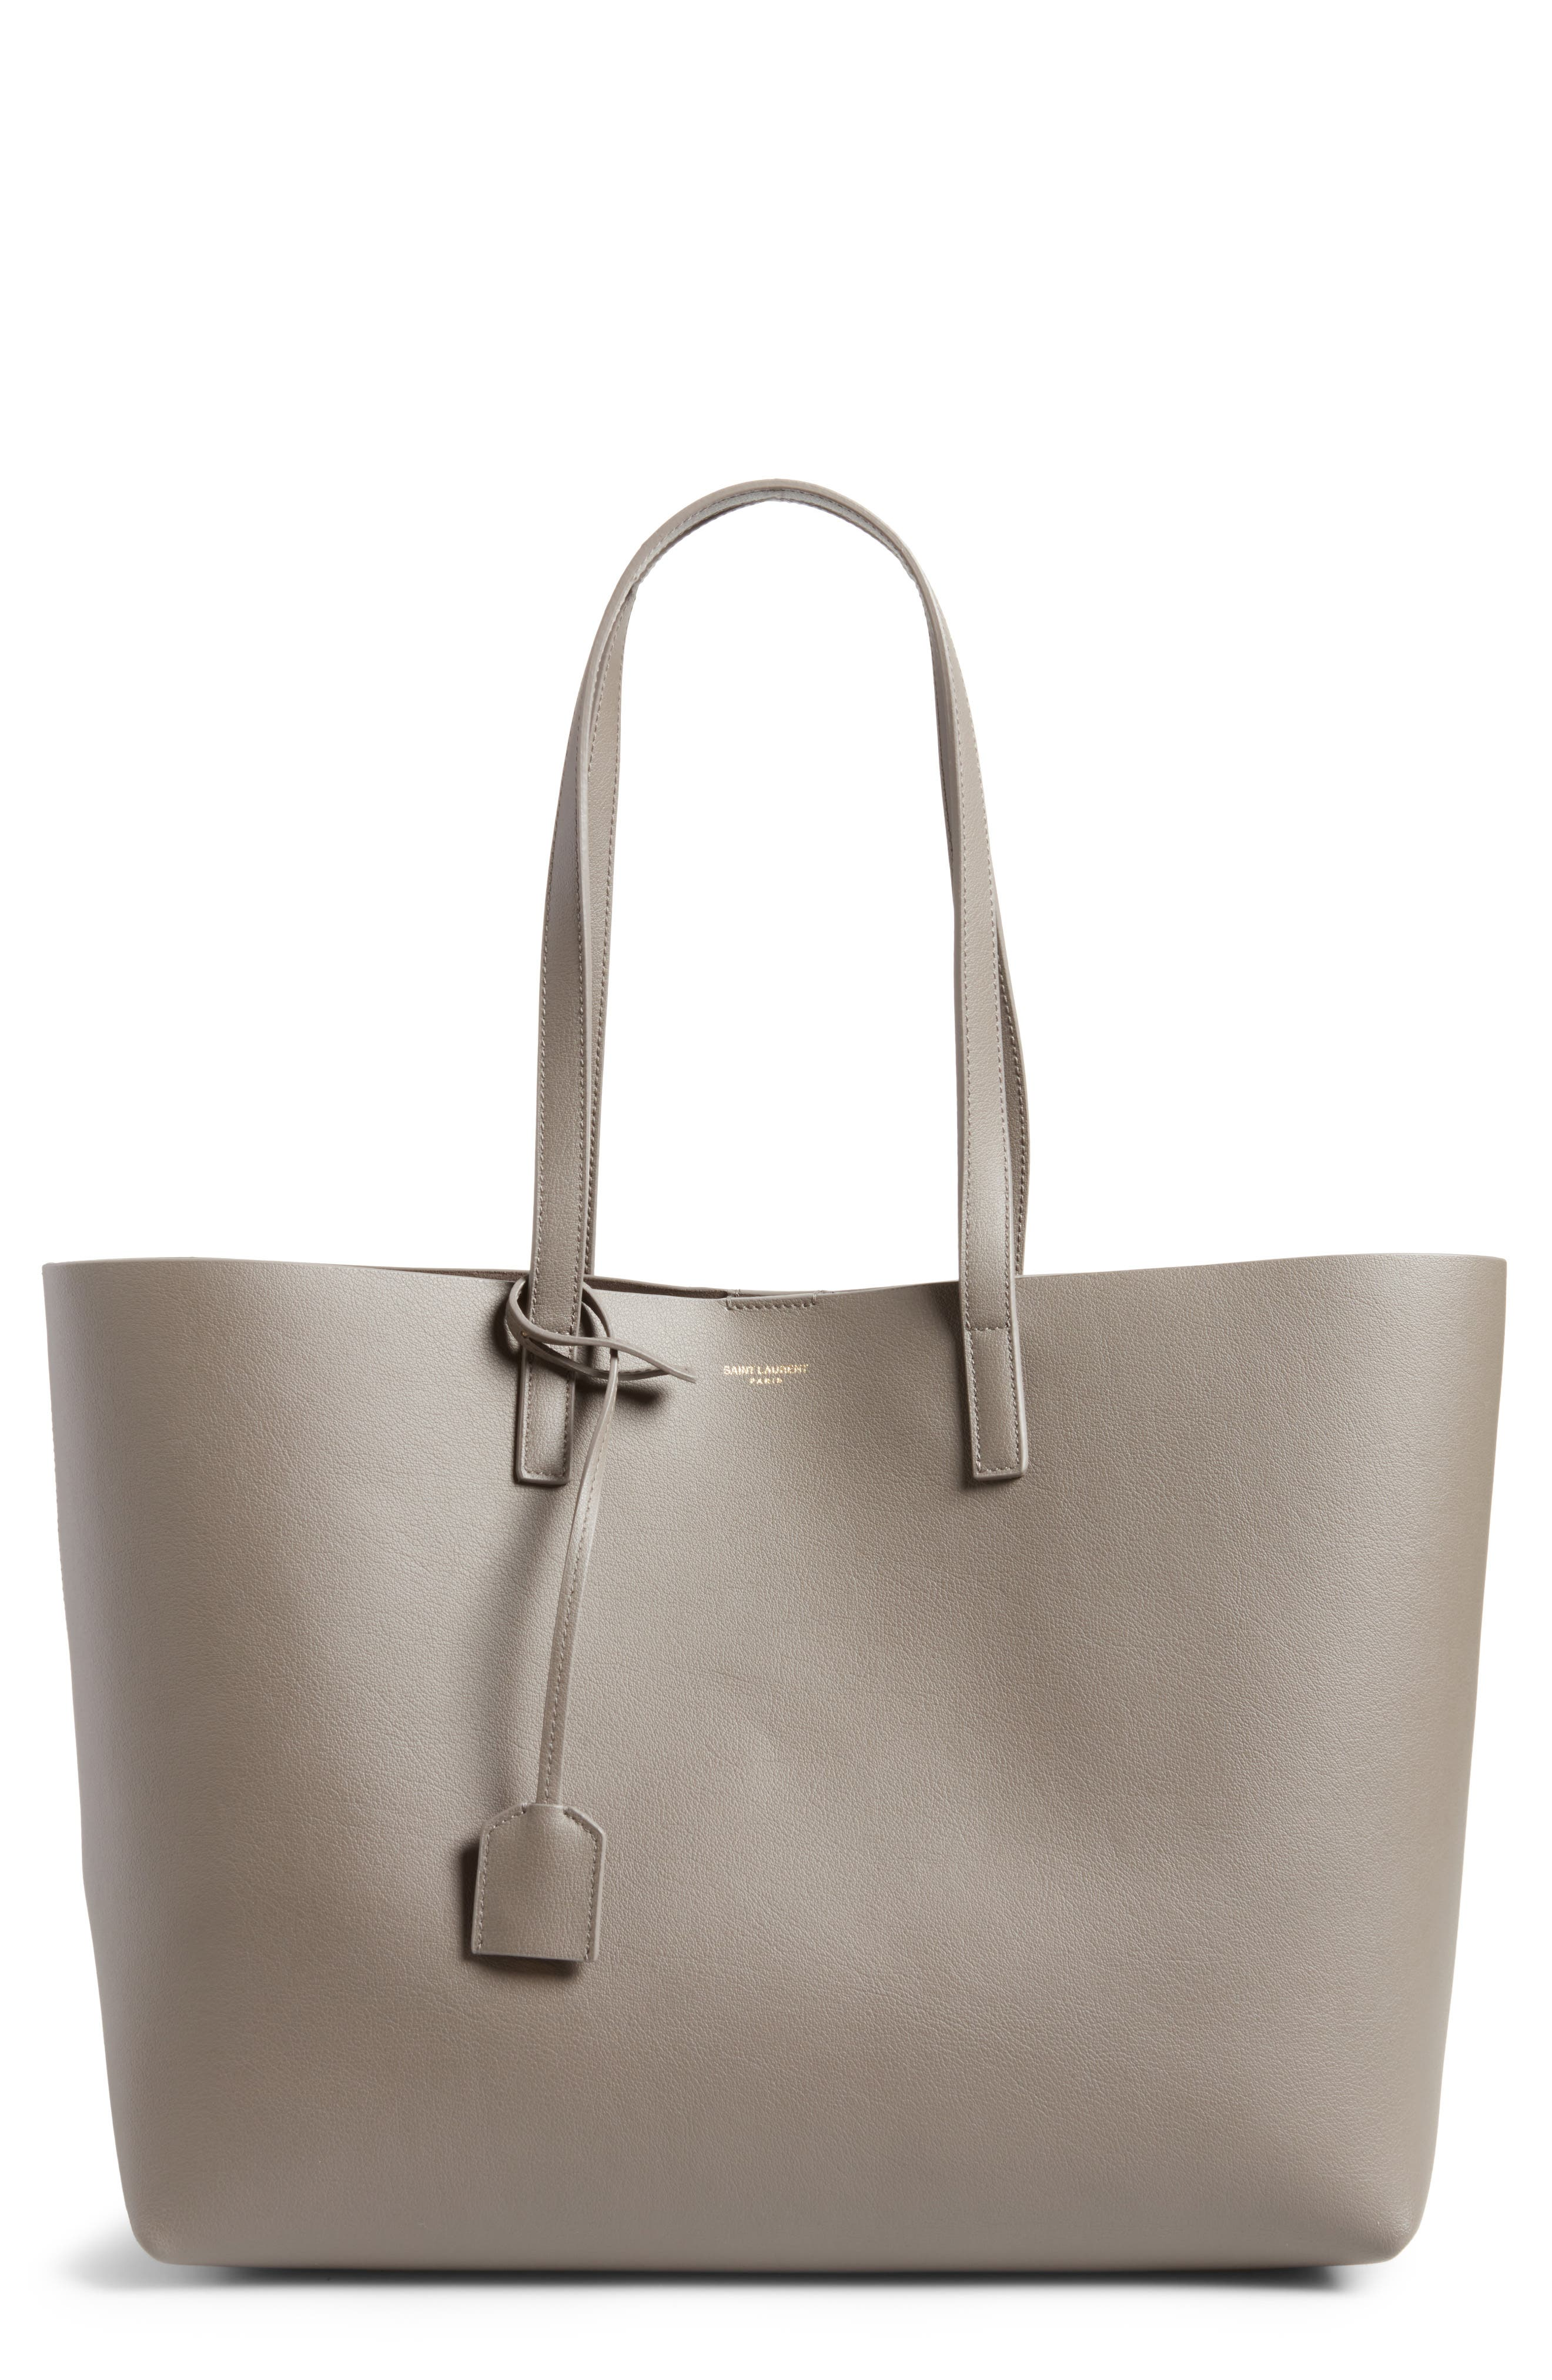 Alternate Image 1 Selected - Saint Laurent 'Shopping' Leather Tote